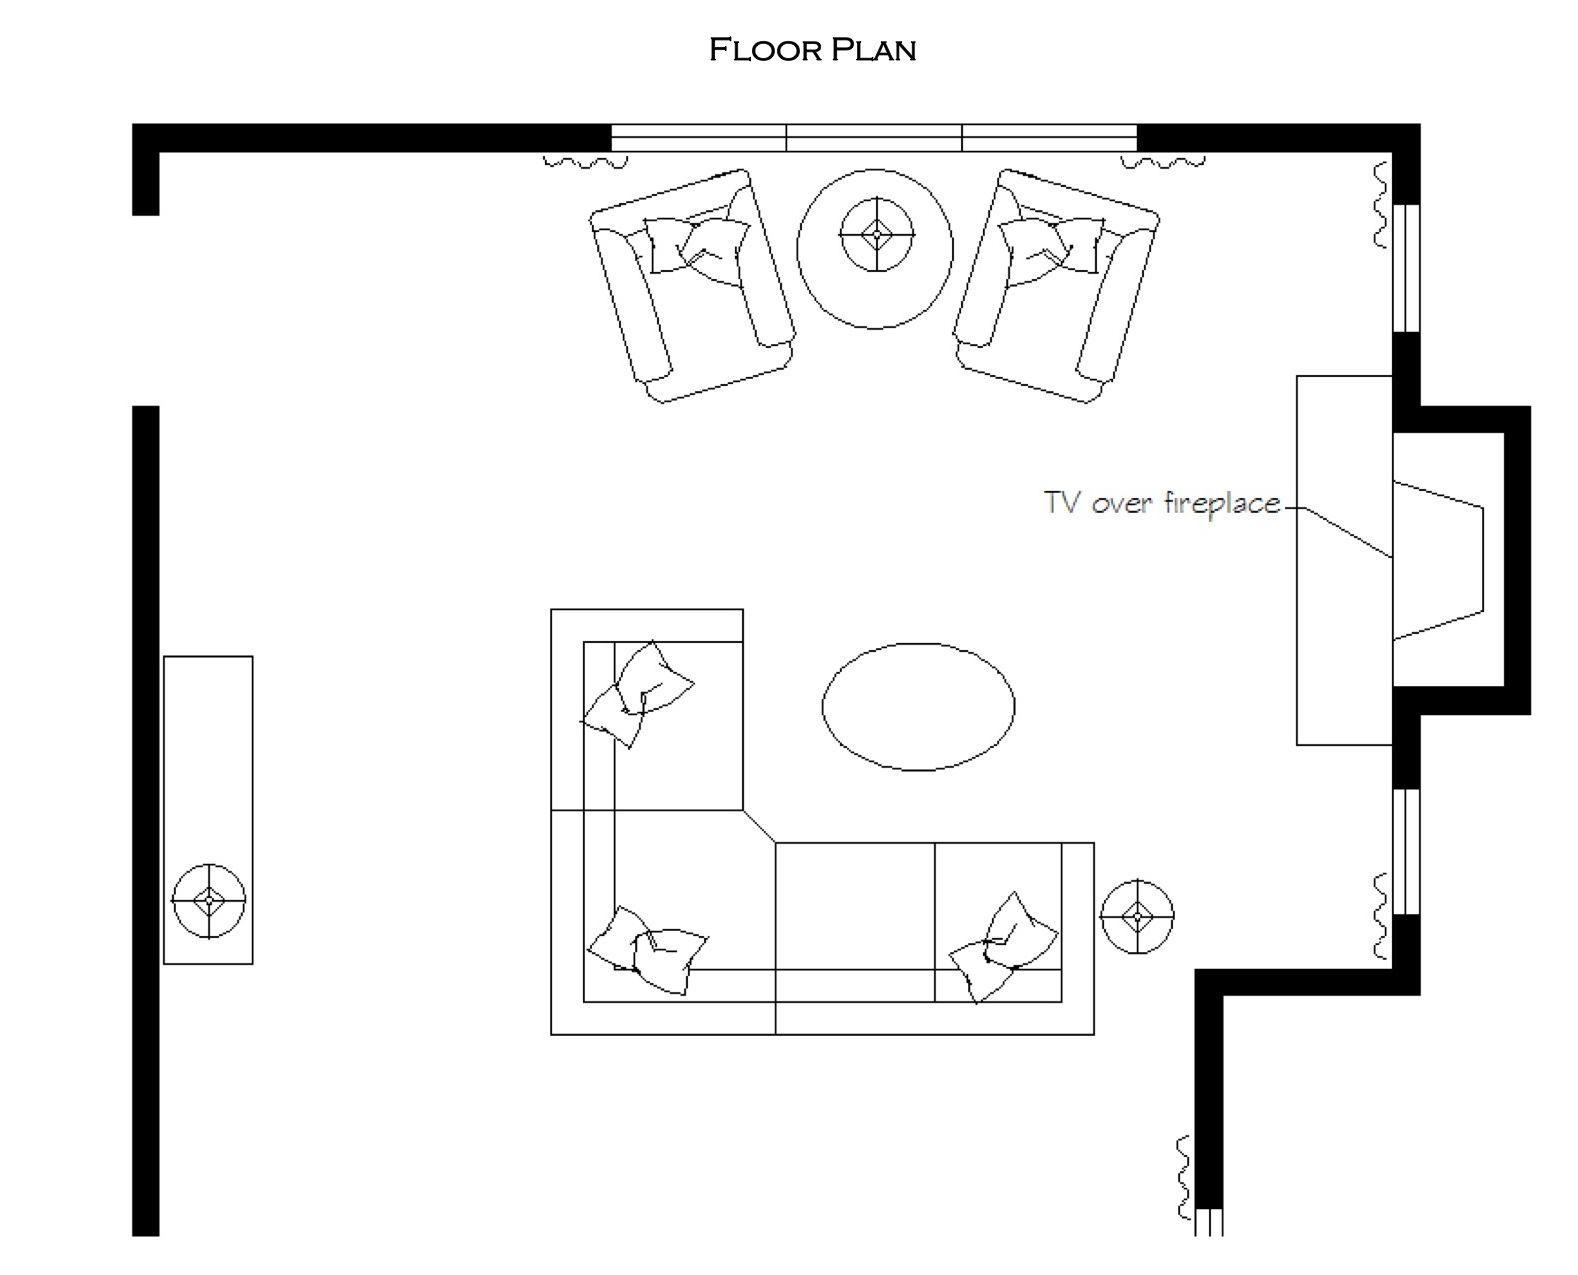 Living room floor plan sectional tv over fireplace for Family room furniture layout tv fireplace